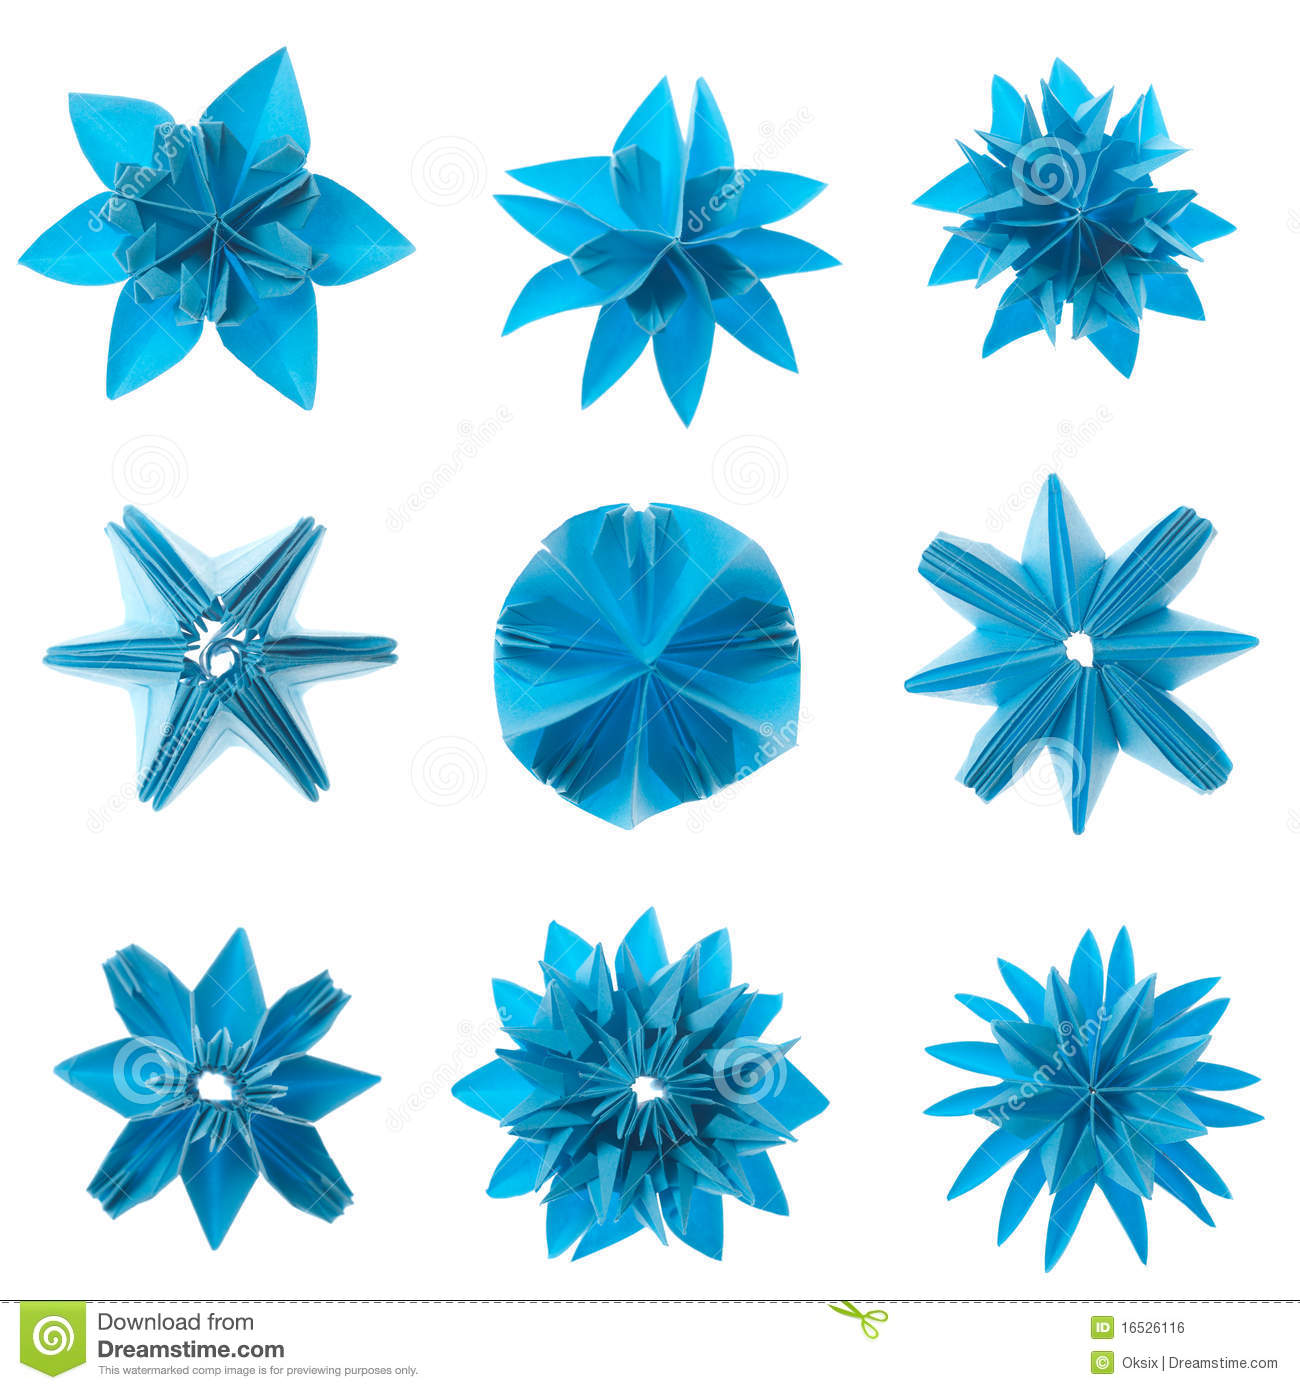 Origami Snowflake Stock Vectors Clipart and Illustrations